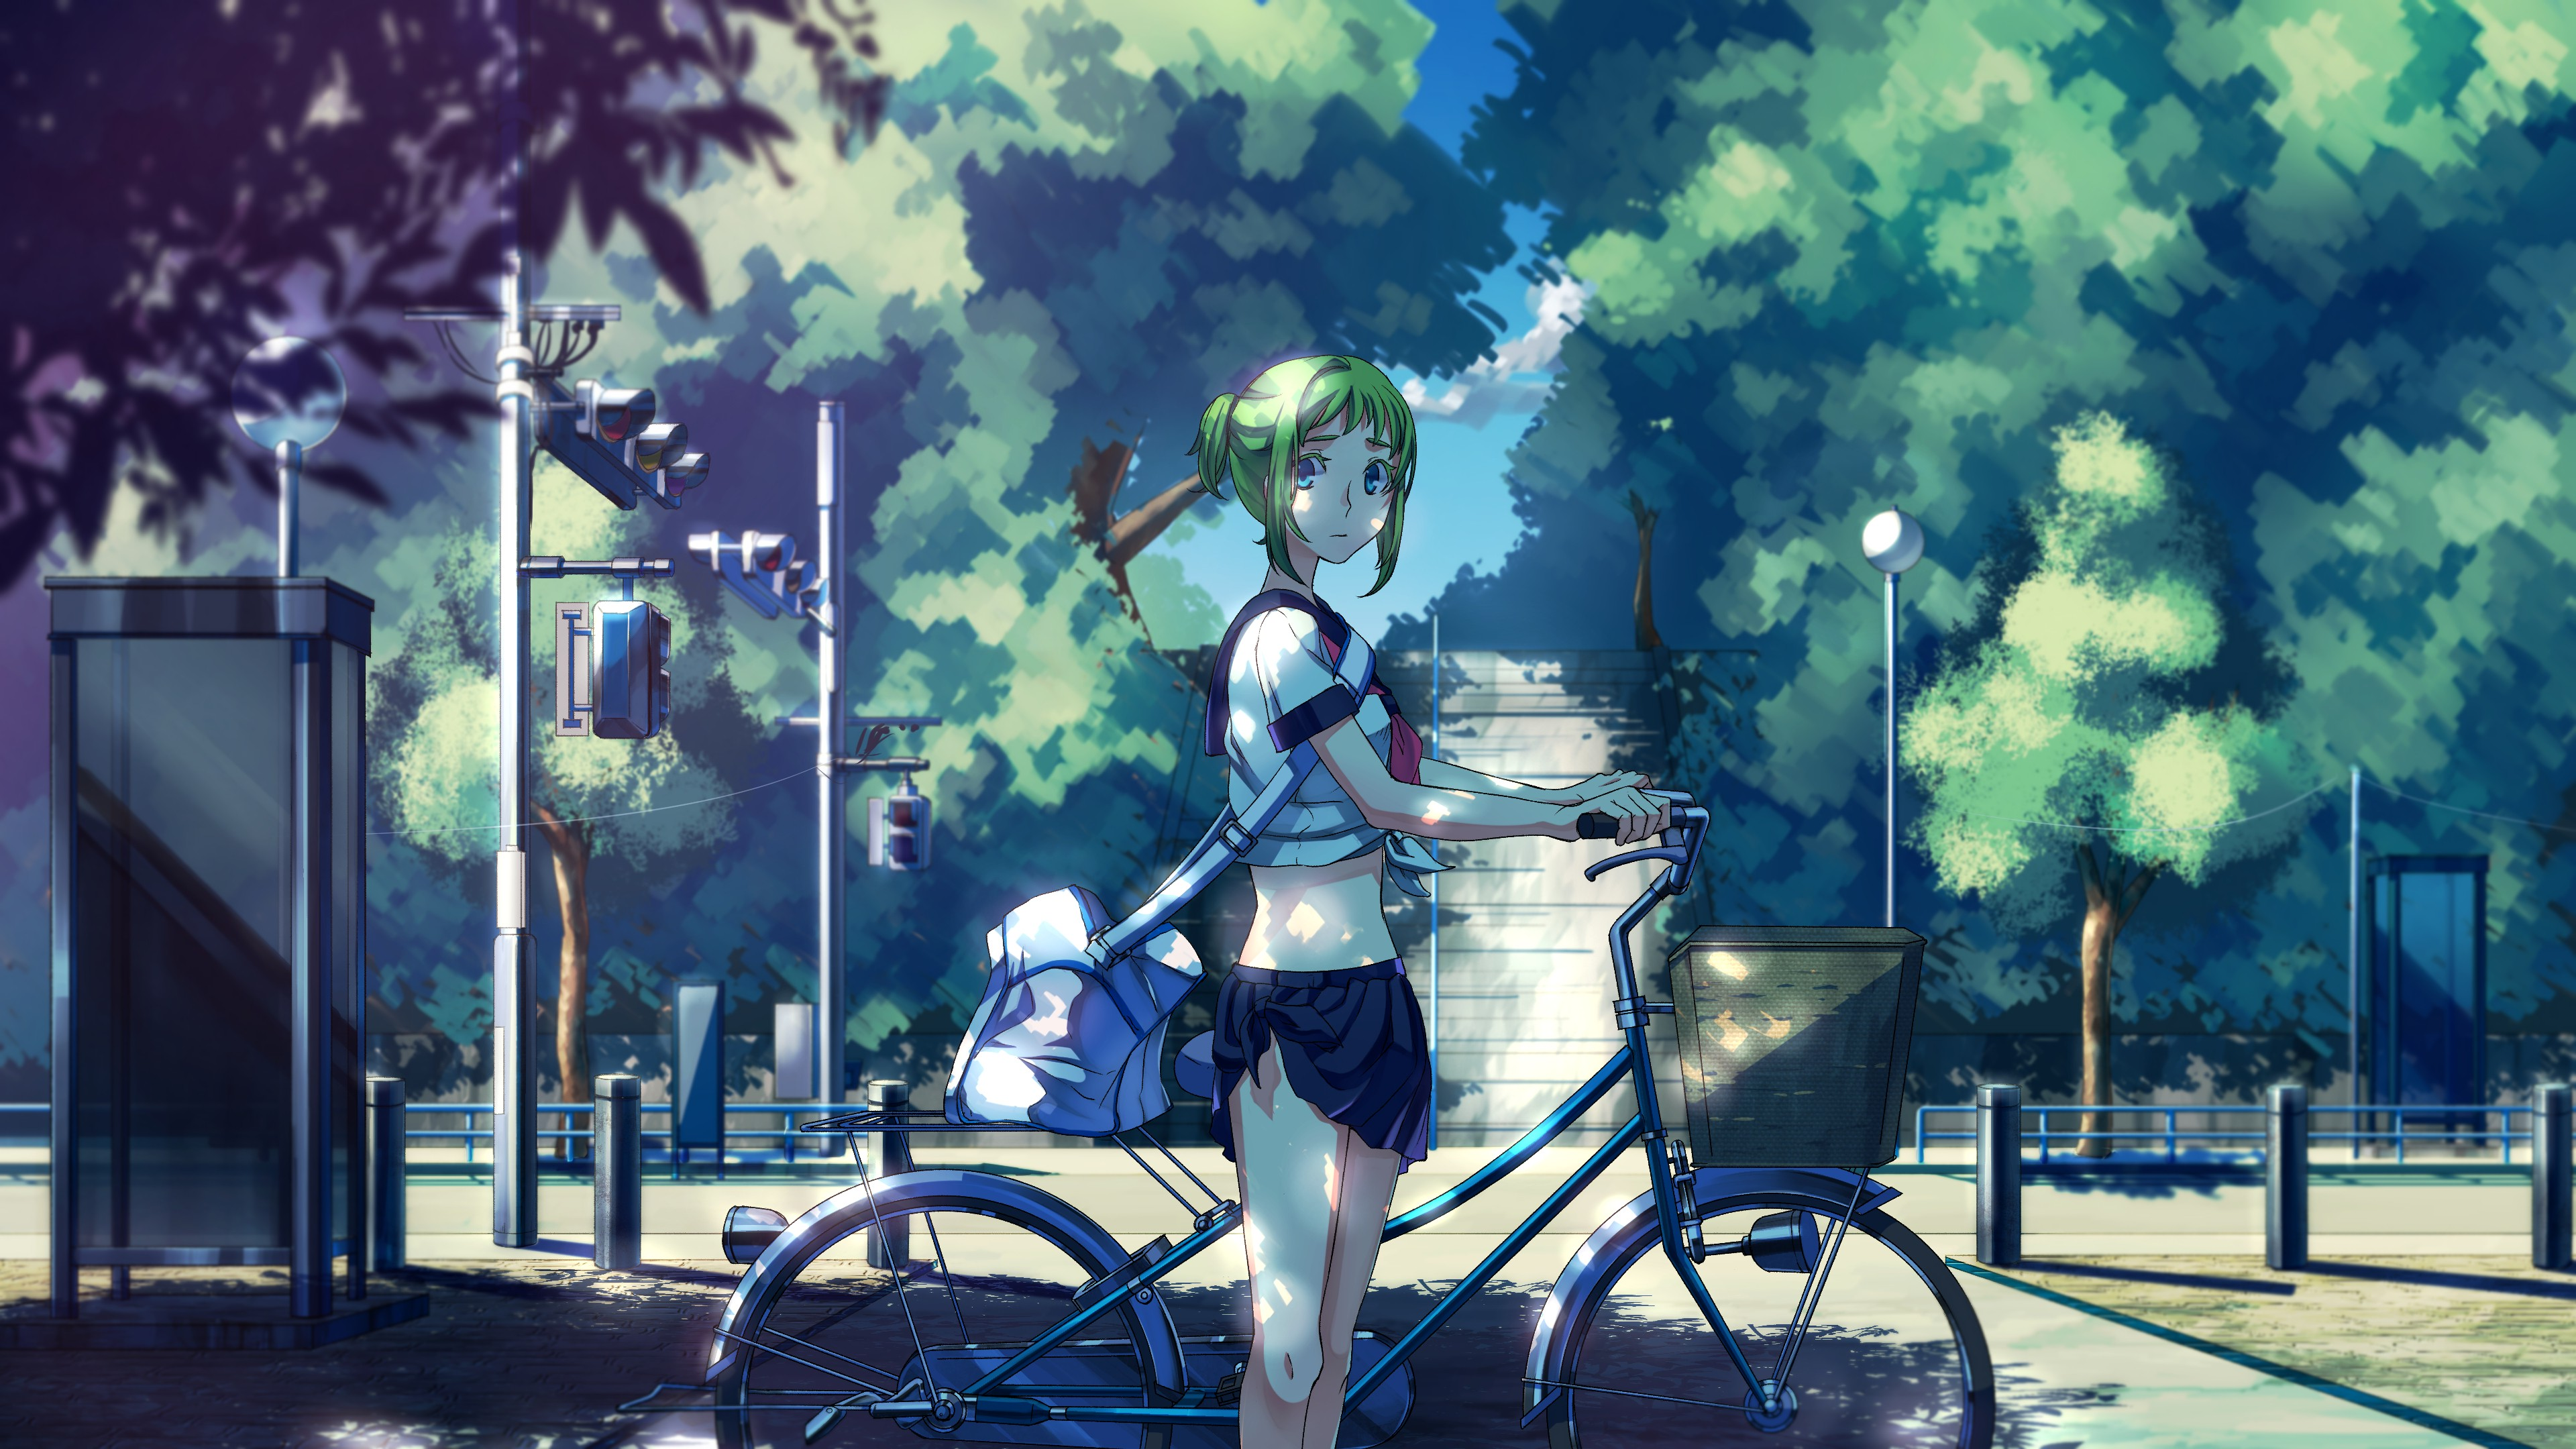 Hd 2160 Wallpapers Girl Anime Vocaloid Megpoid Gumi School Uniform Bicycle